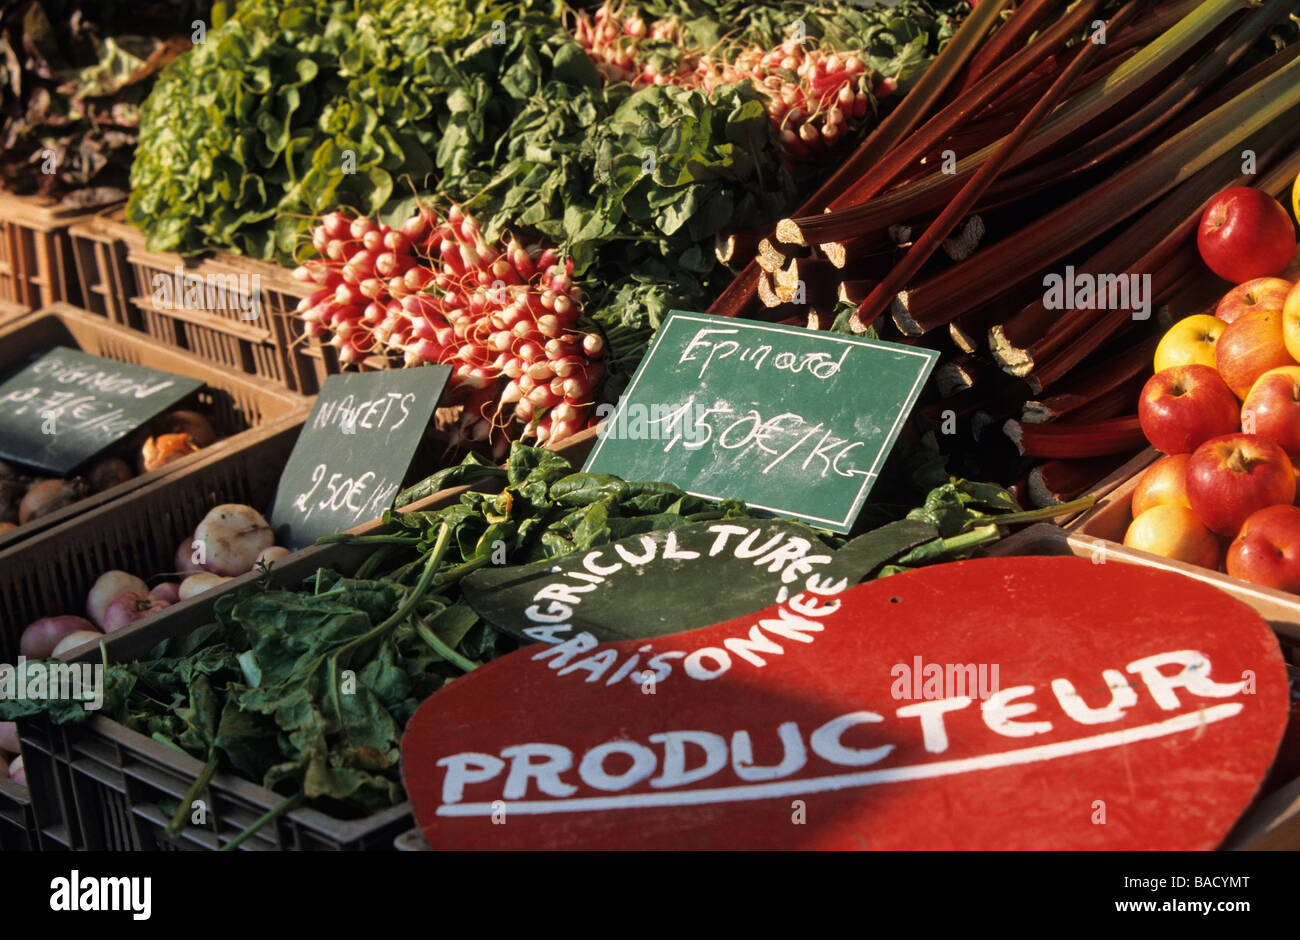 France, Nord, Lille, close-up of the stall of a producer integrating farming on the market - Stock Image